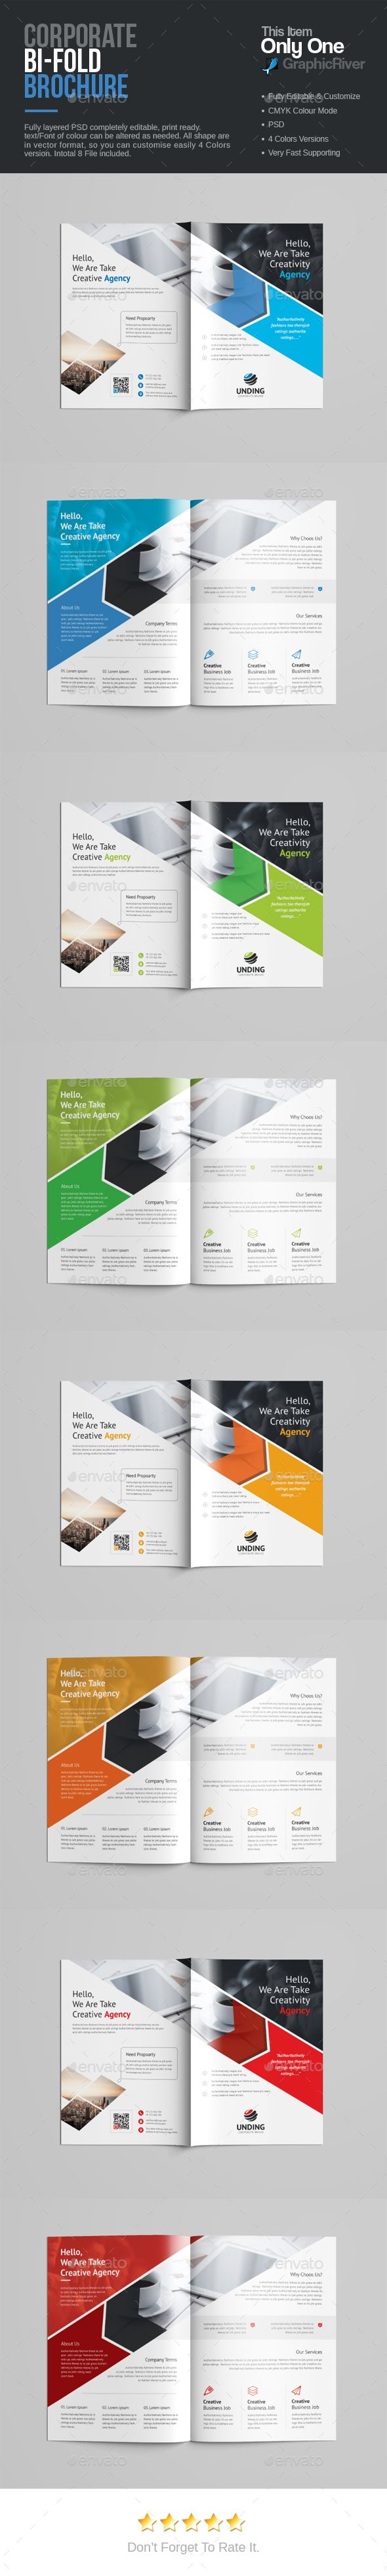 Bi-Fold Brochure - Download: https://graphicriver.net/item/bifold-brochure/18953332?ref=sinzo #Corporate #Brochures